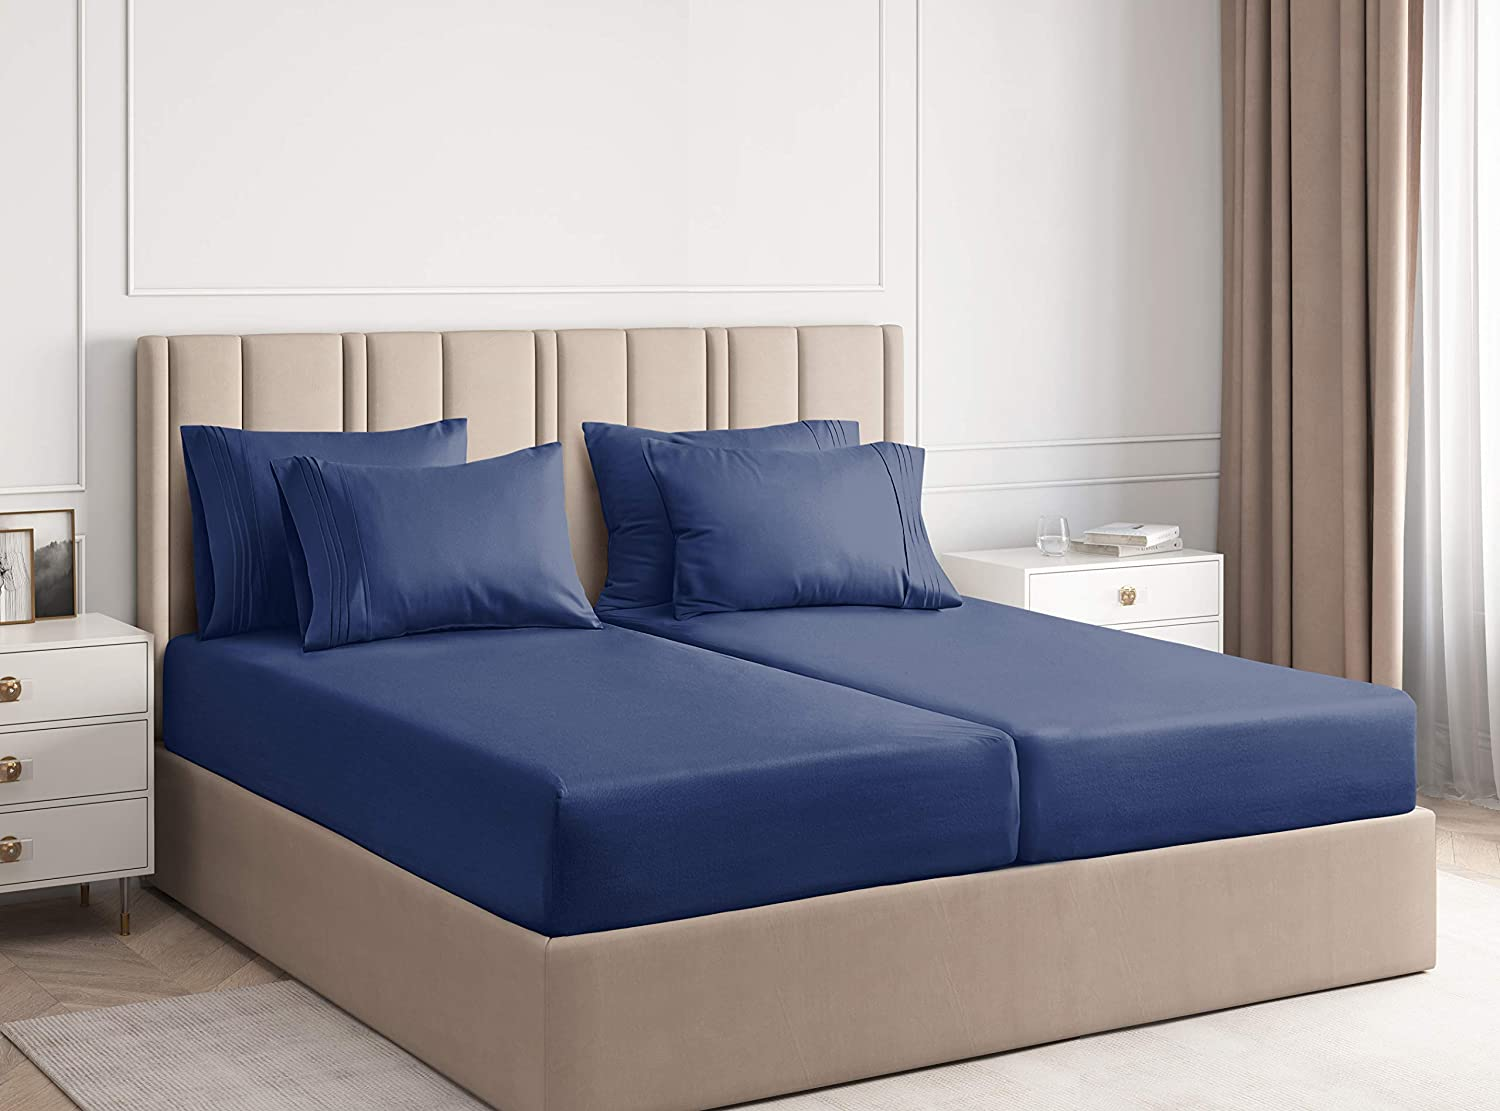 Split King Size Sheet OFFicial site Set - New products world's highest quality popular Bed Luxury Hotel Piece 7